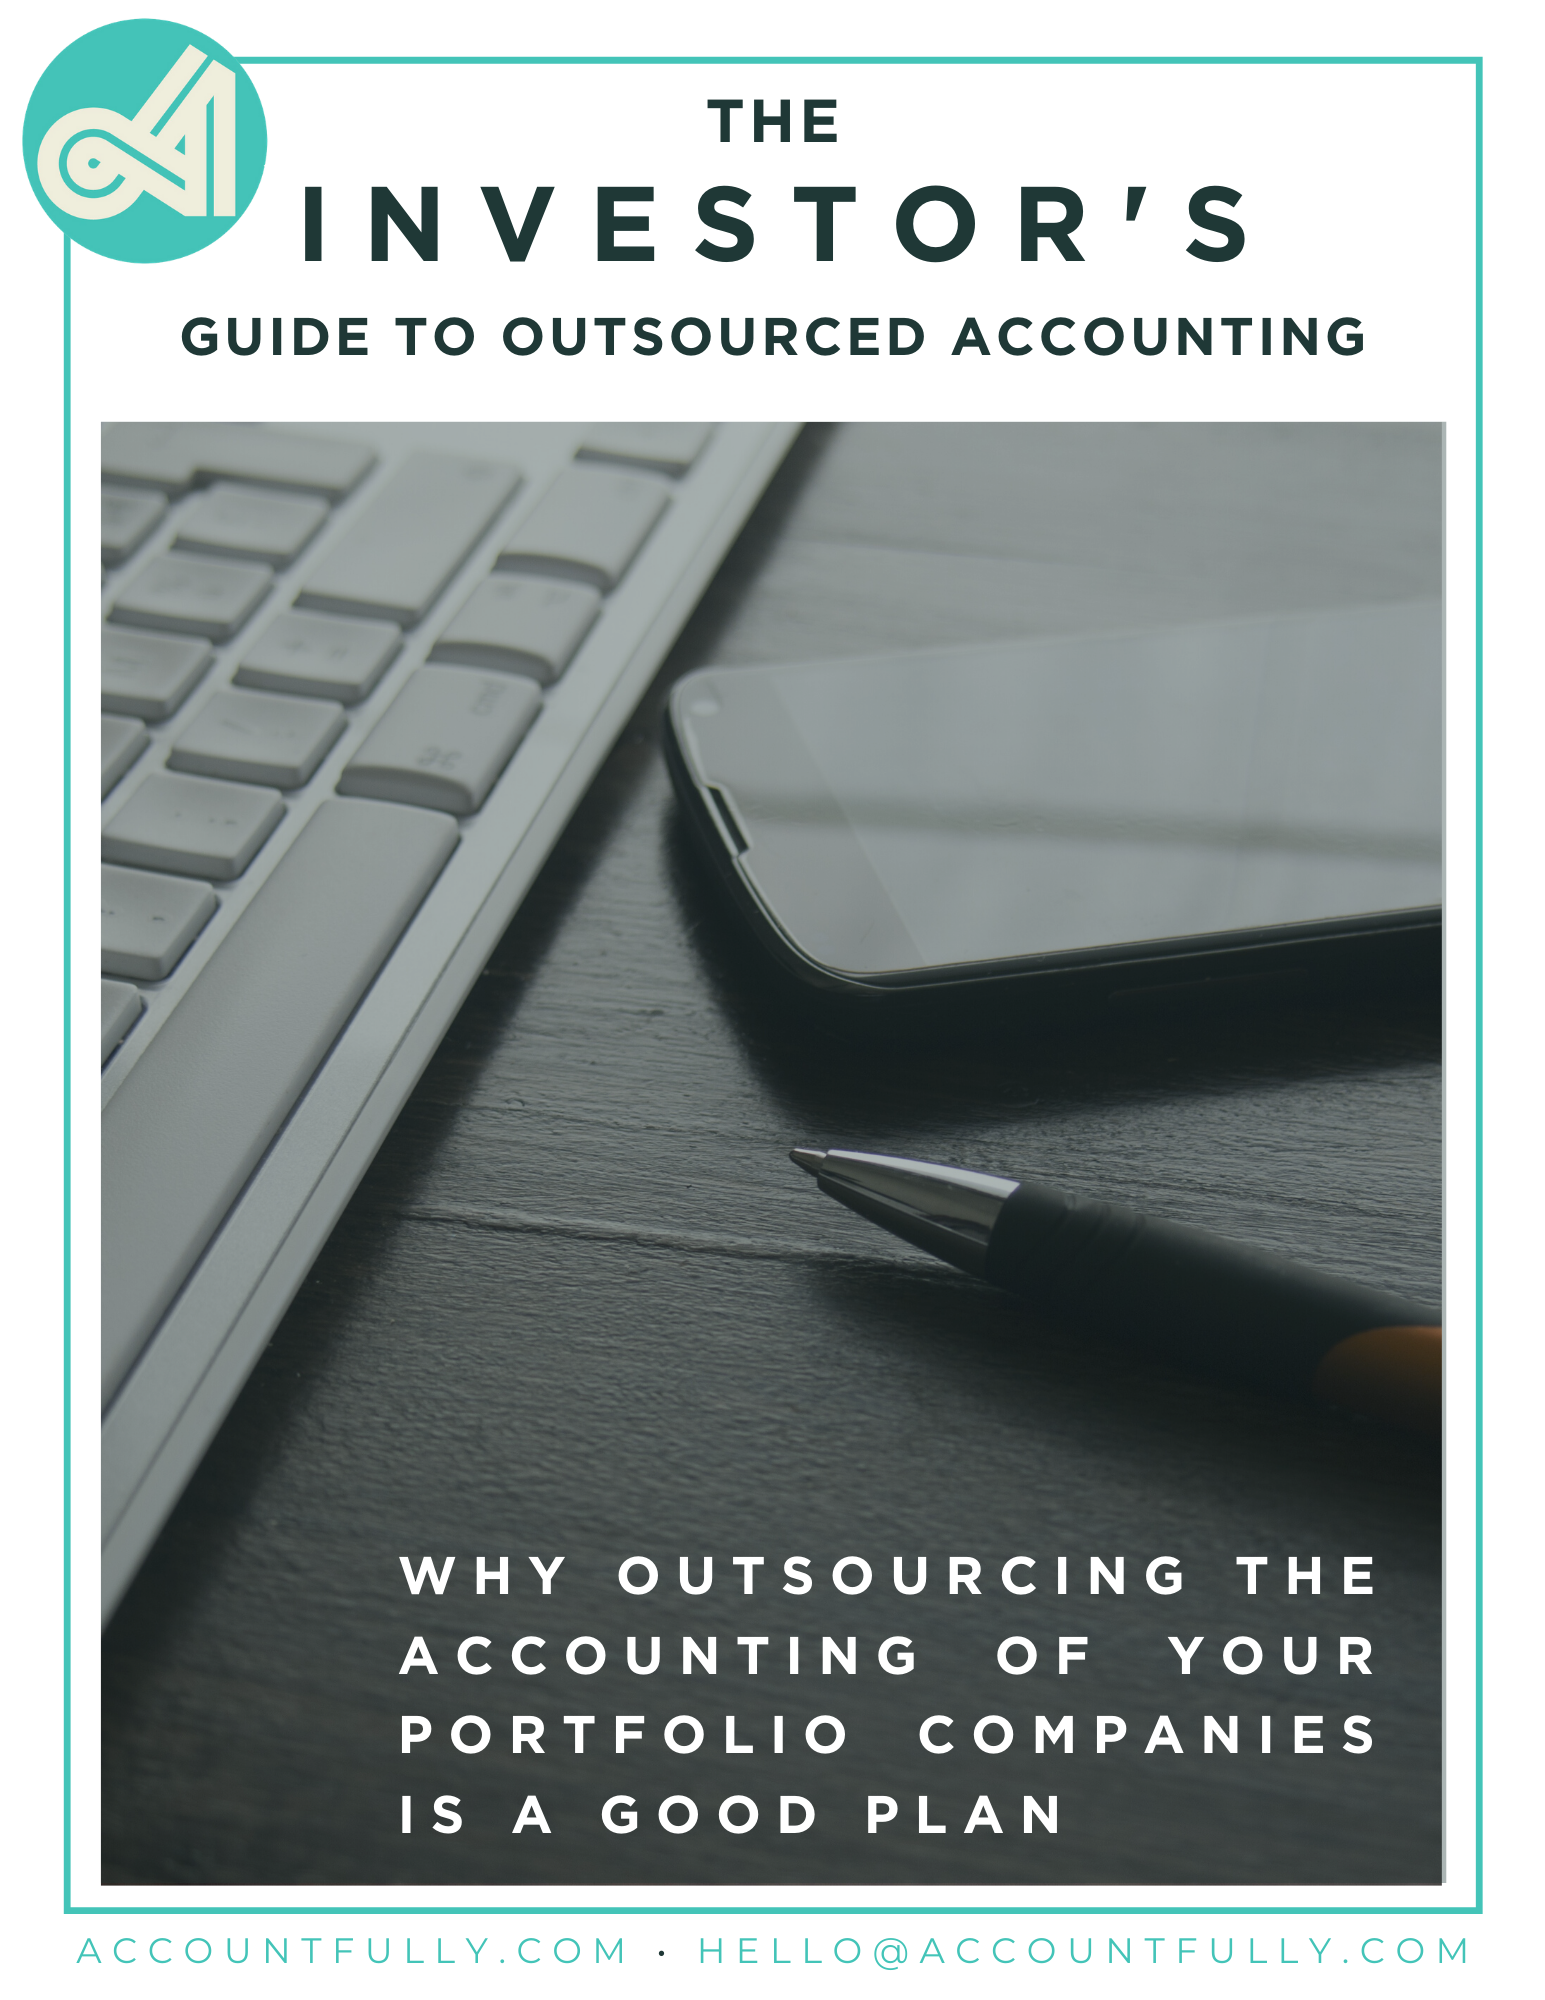 the investors guide to outsourced accounting